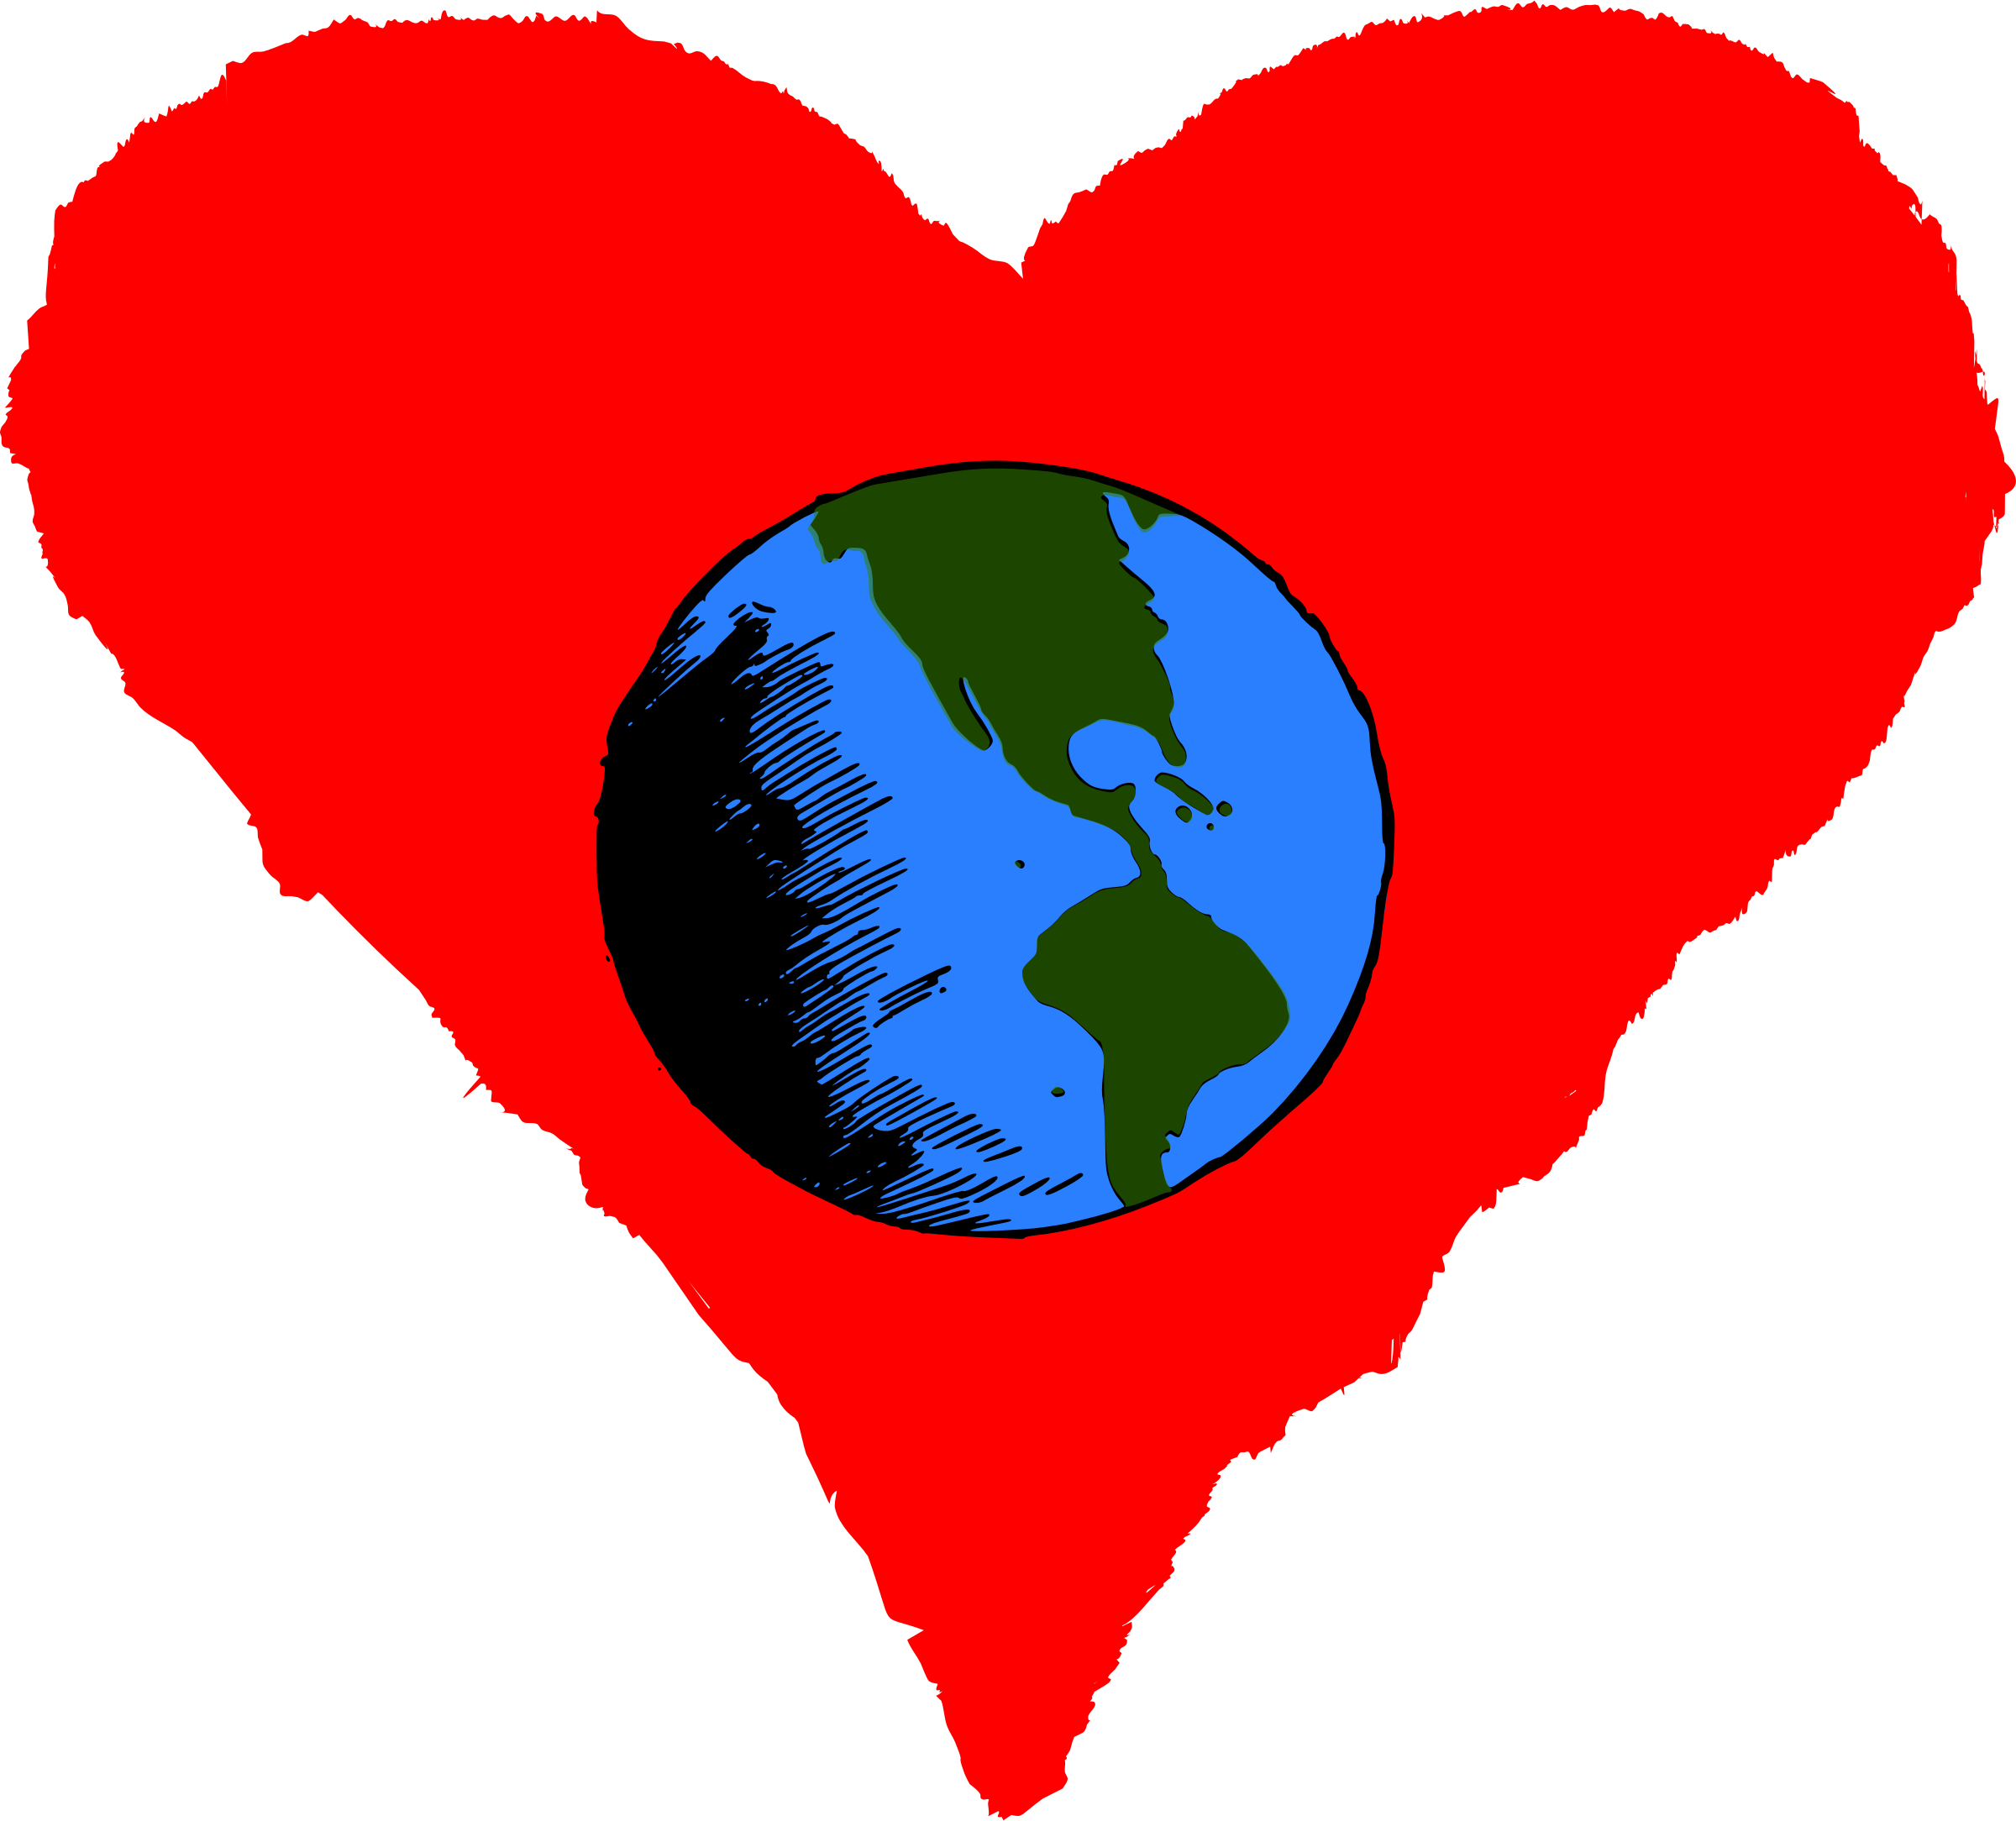 Earth heart clipart clip freeuse library Clipart - Happy Earth Day clip freeuse library